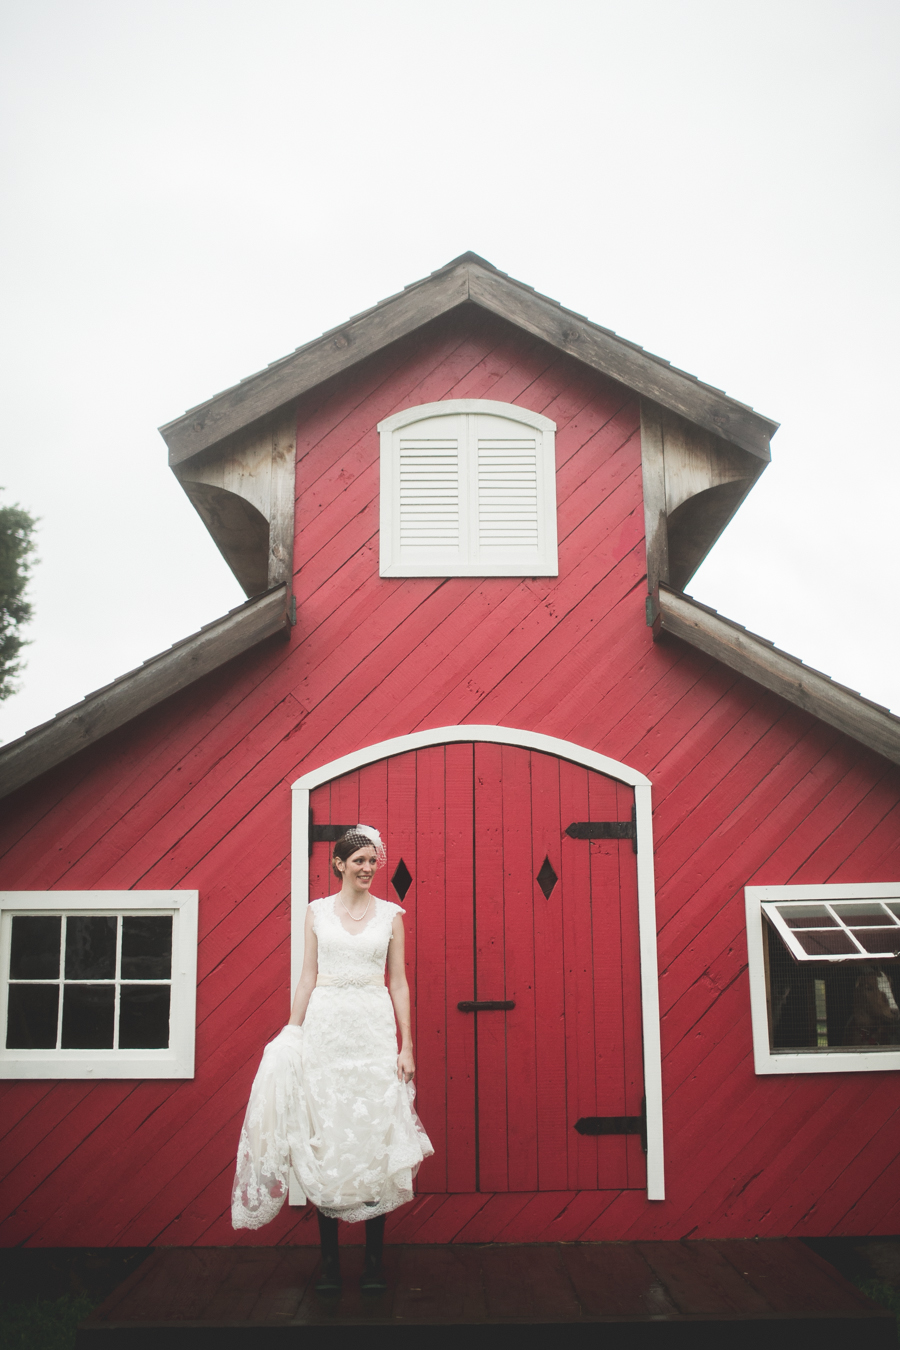 south pond farms, ontario wedding photographer, south pond farms wedding photographer, peterborough wedding photographer, best wedding photographer ontario, destination wedding photographer